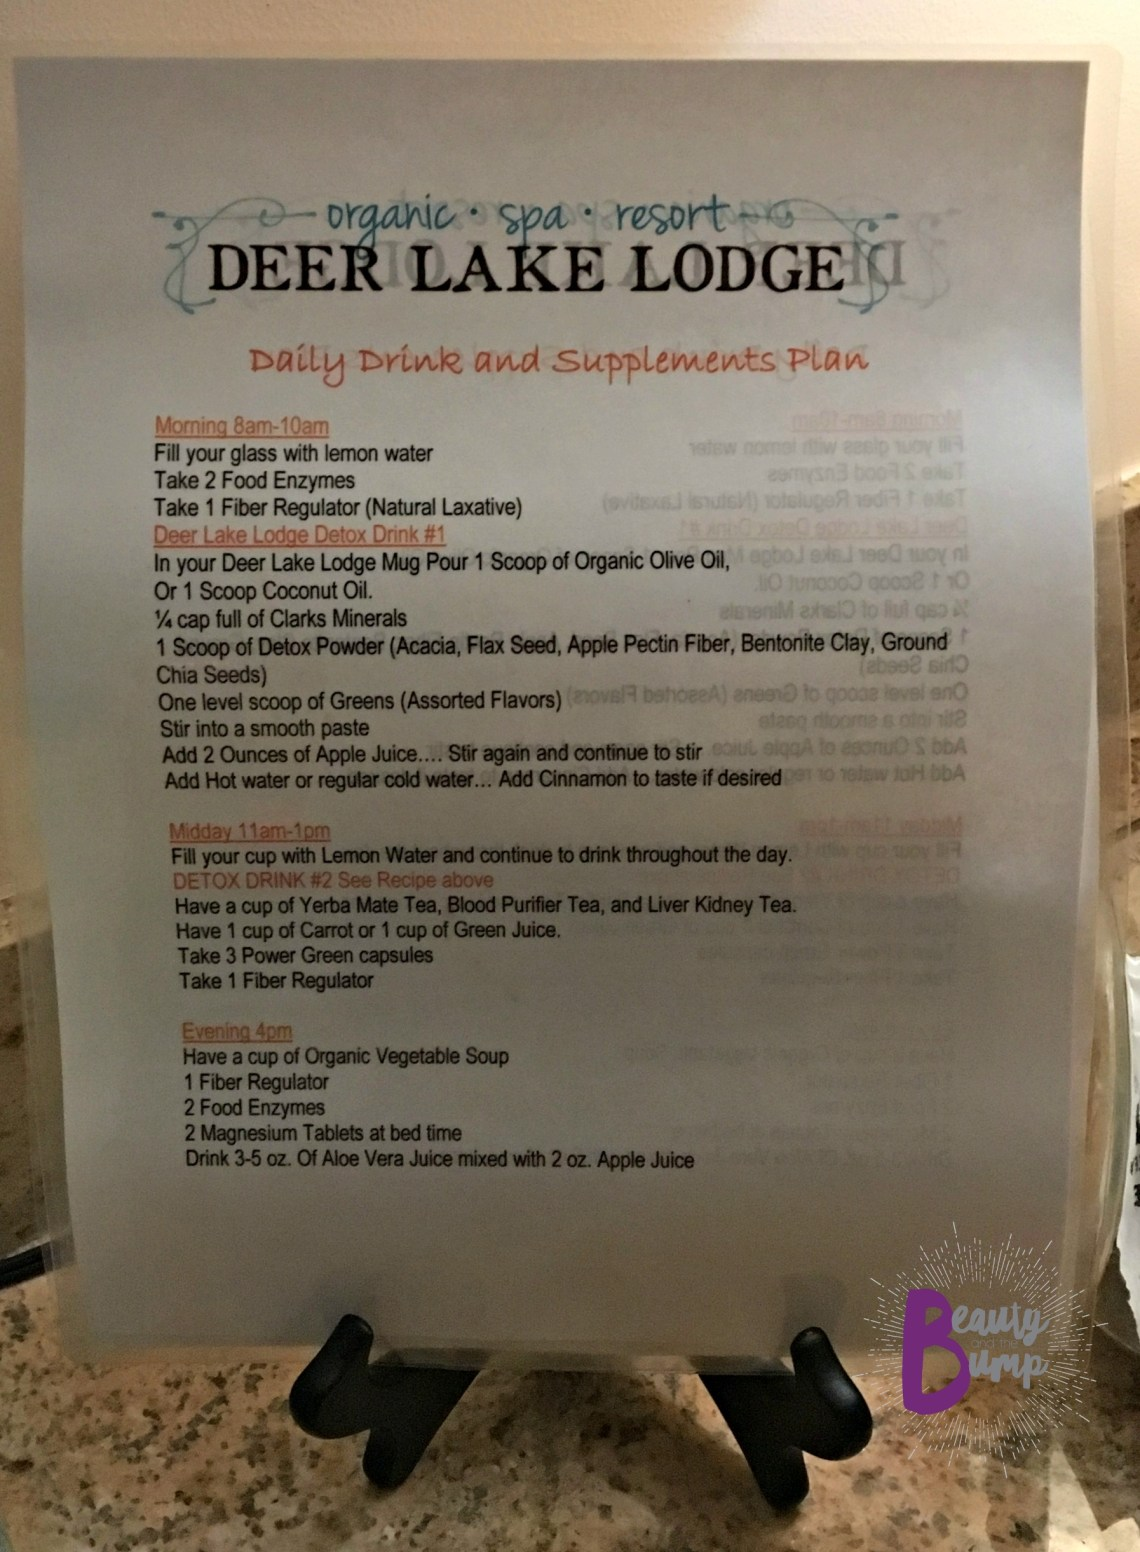 deer-lake-lodge-resort-drink-and-supplement-plans